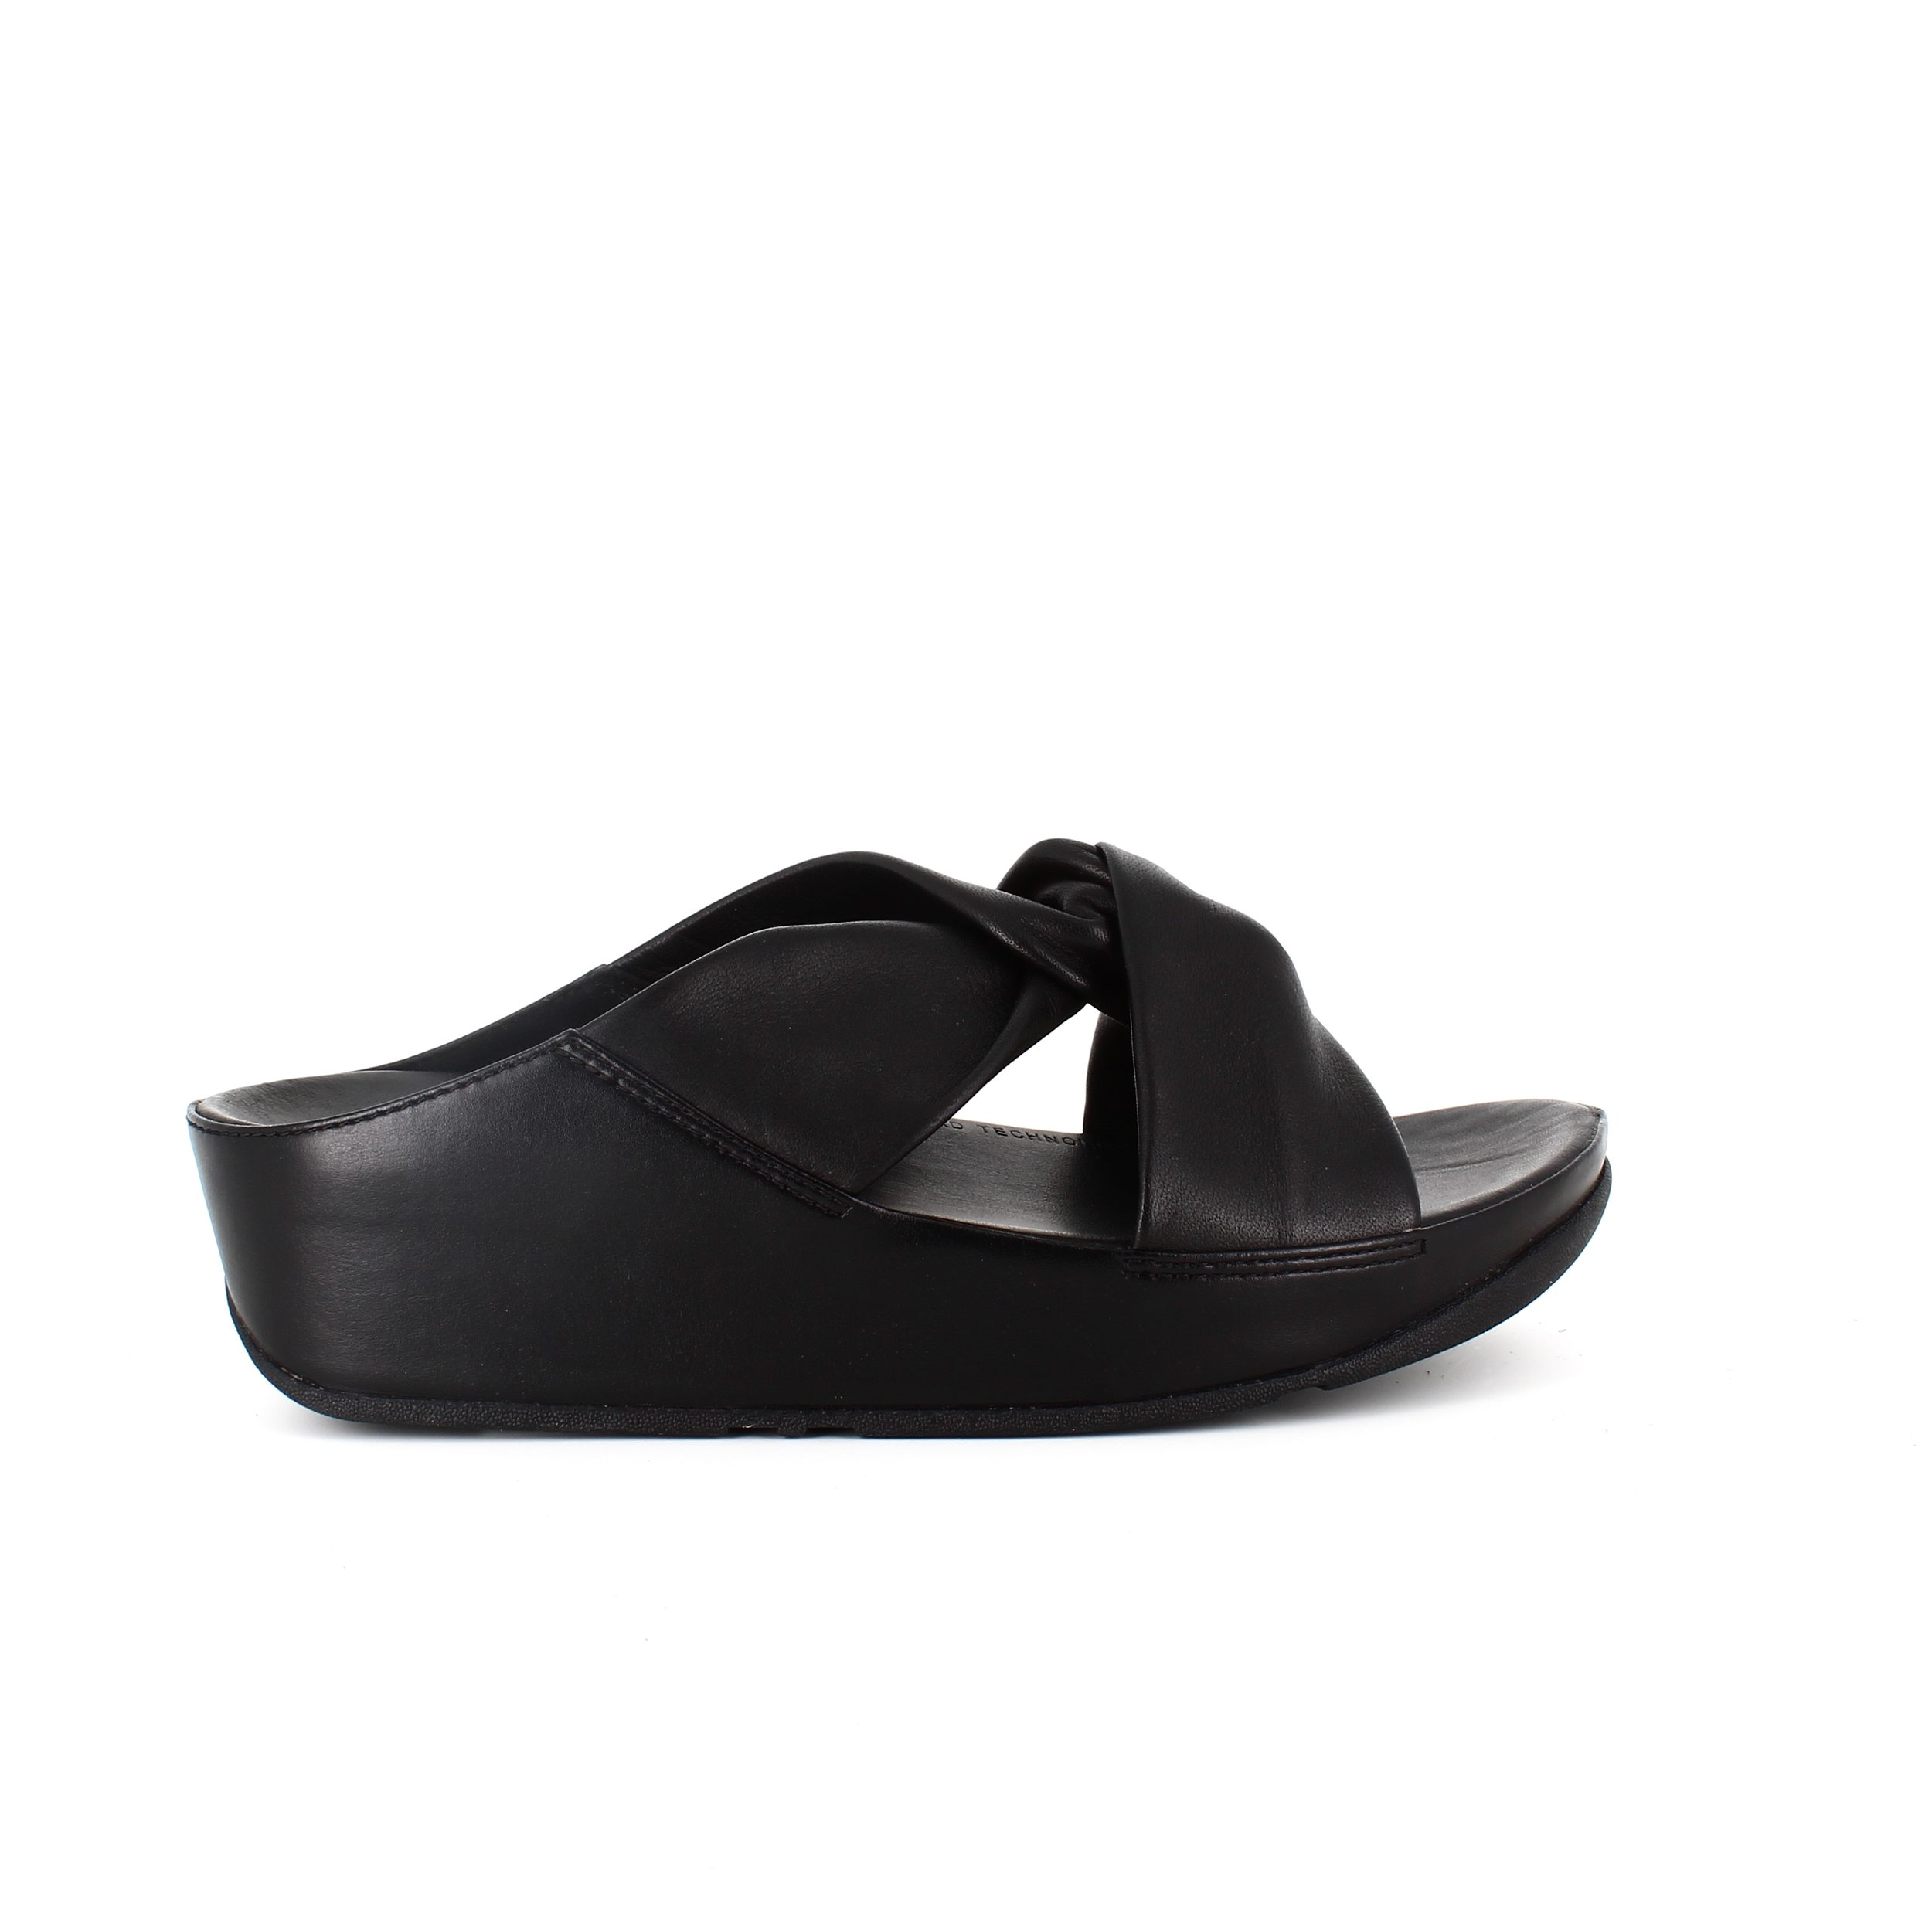 Image of   Fitflop læder sandal twiss slide - 37